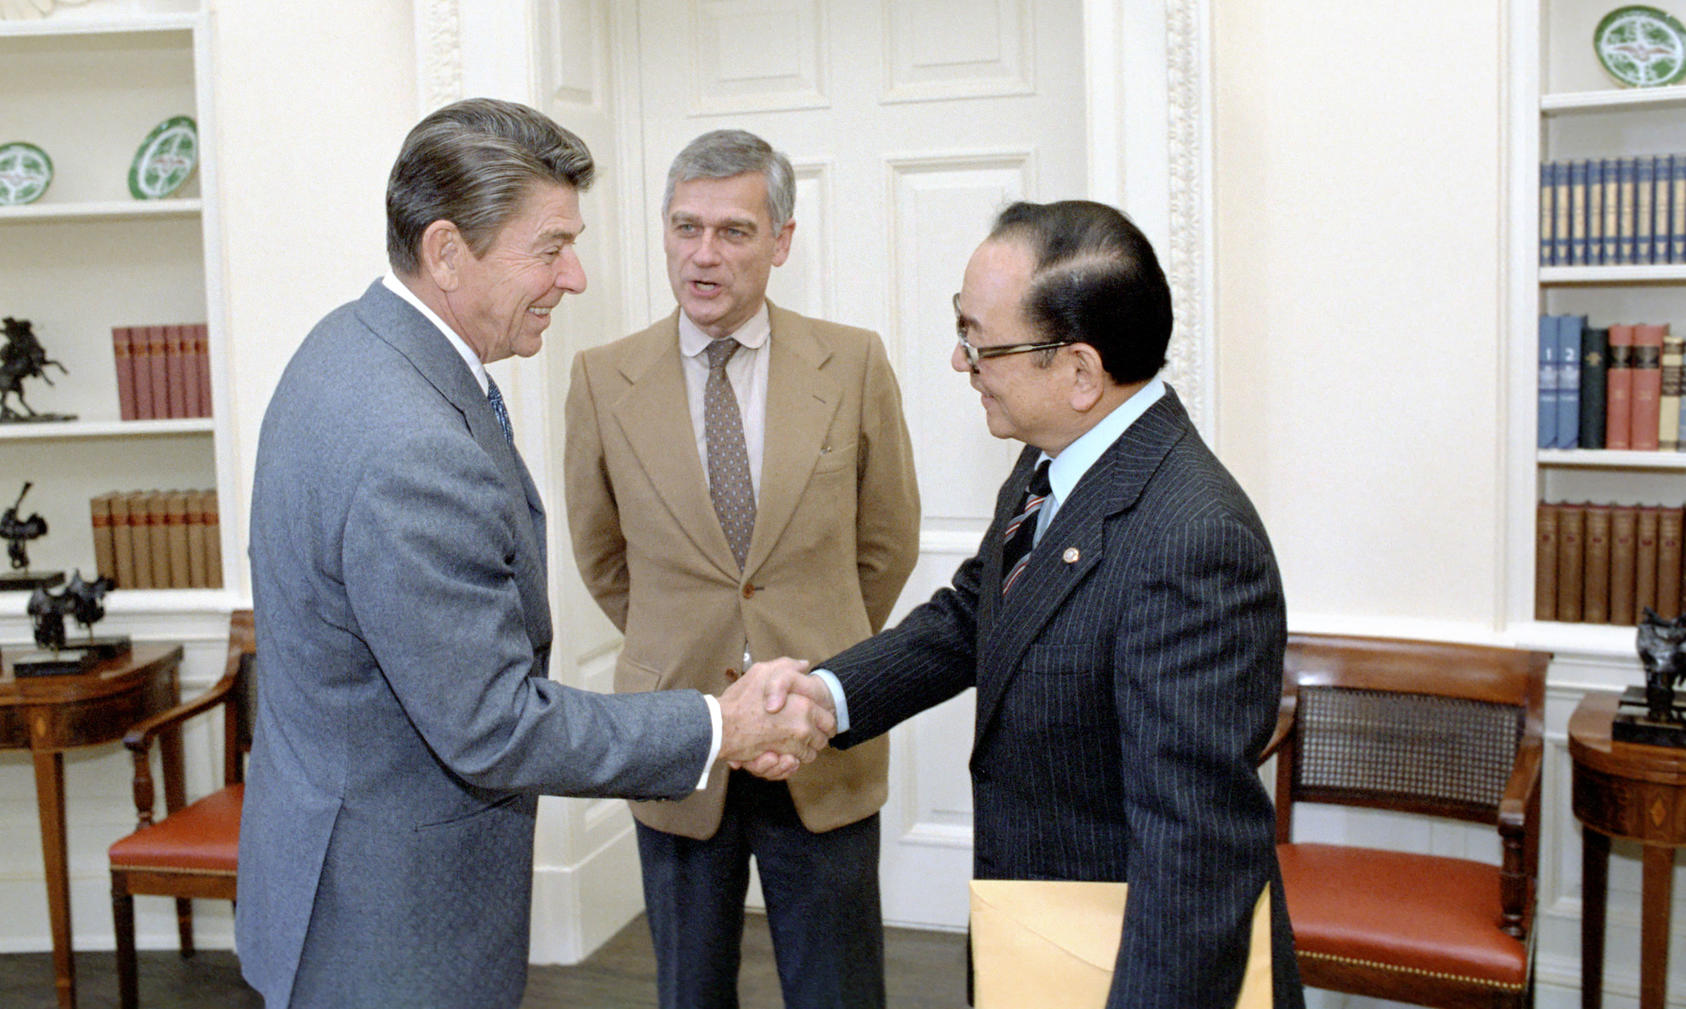 Senators and World War II veterans Spark Matsunaga of Hawaii, right, and Mark Hatfield of Oregon, center, meet President Ronald Reagan in 1984 as they establish the U.S. Institute of Peace.Senators and World War II veterans Spark Matsunaga of Hawaii, right, and Mark Hatfield of Oregon, center, meet President Ronald Reagan in 1984 as they establish the U.S. Institute of Peace.